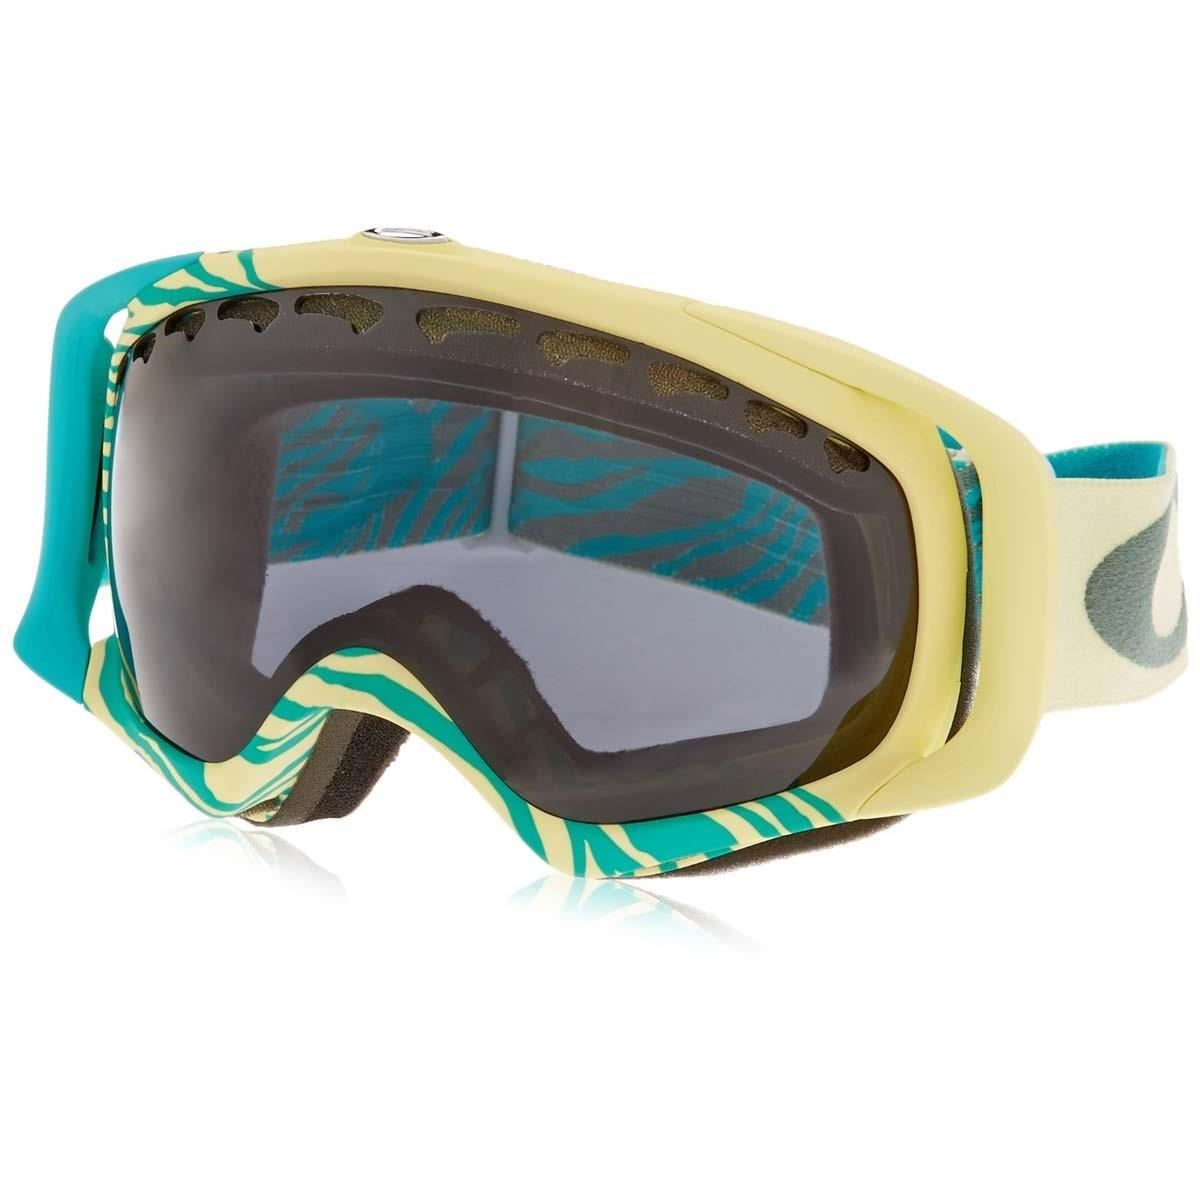 5dad696c66c4 Oakley Crowbar Goggle. Loading zoom